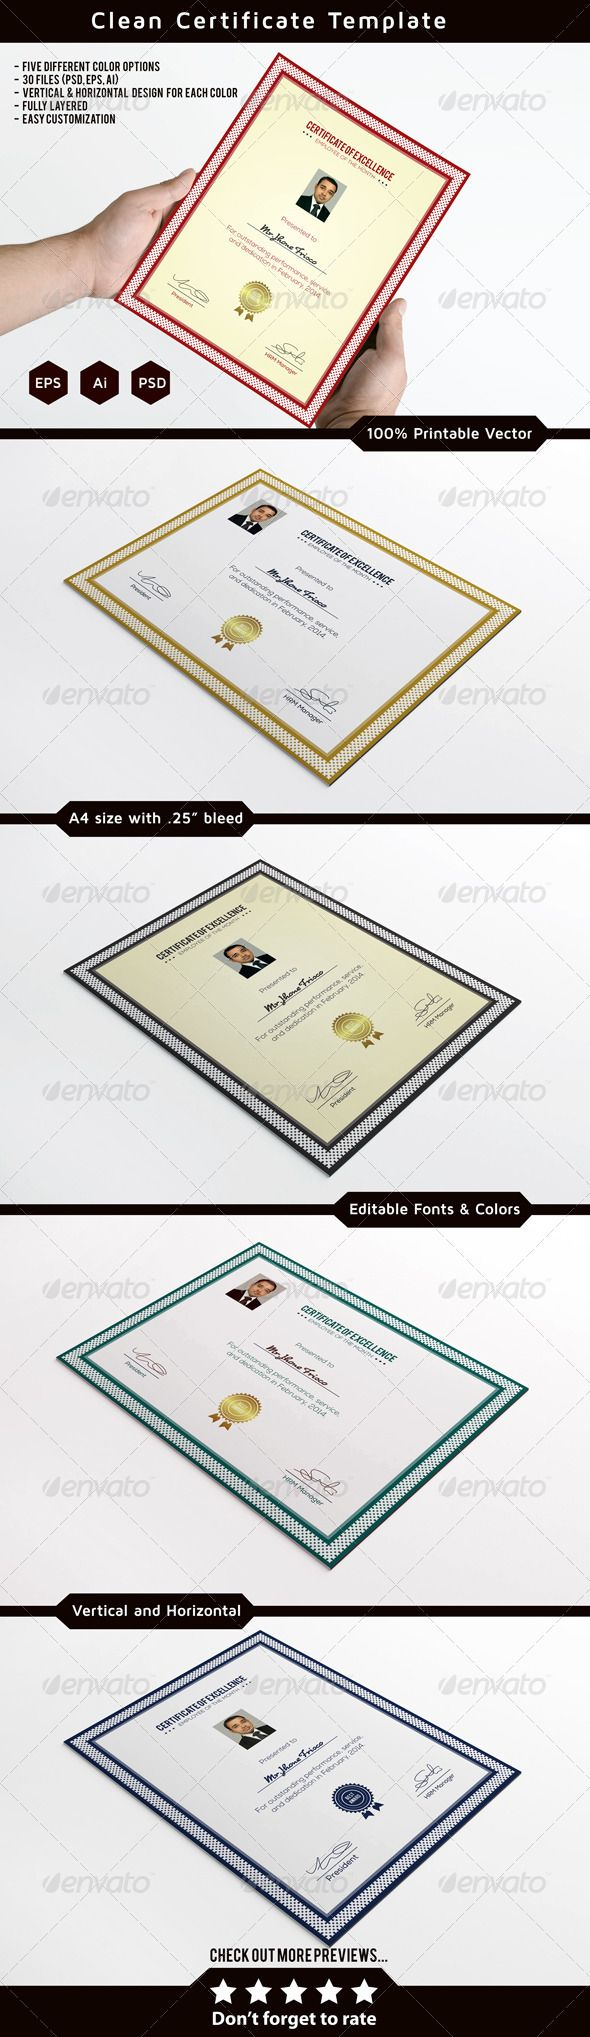 Best 25 certificate templates ideas on pinterest gift clean certificate template certificate template psd vector eps vector ai download here yelopaper Image collections